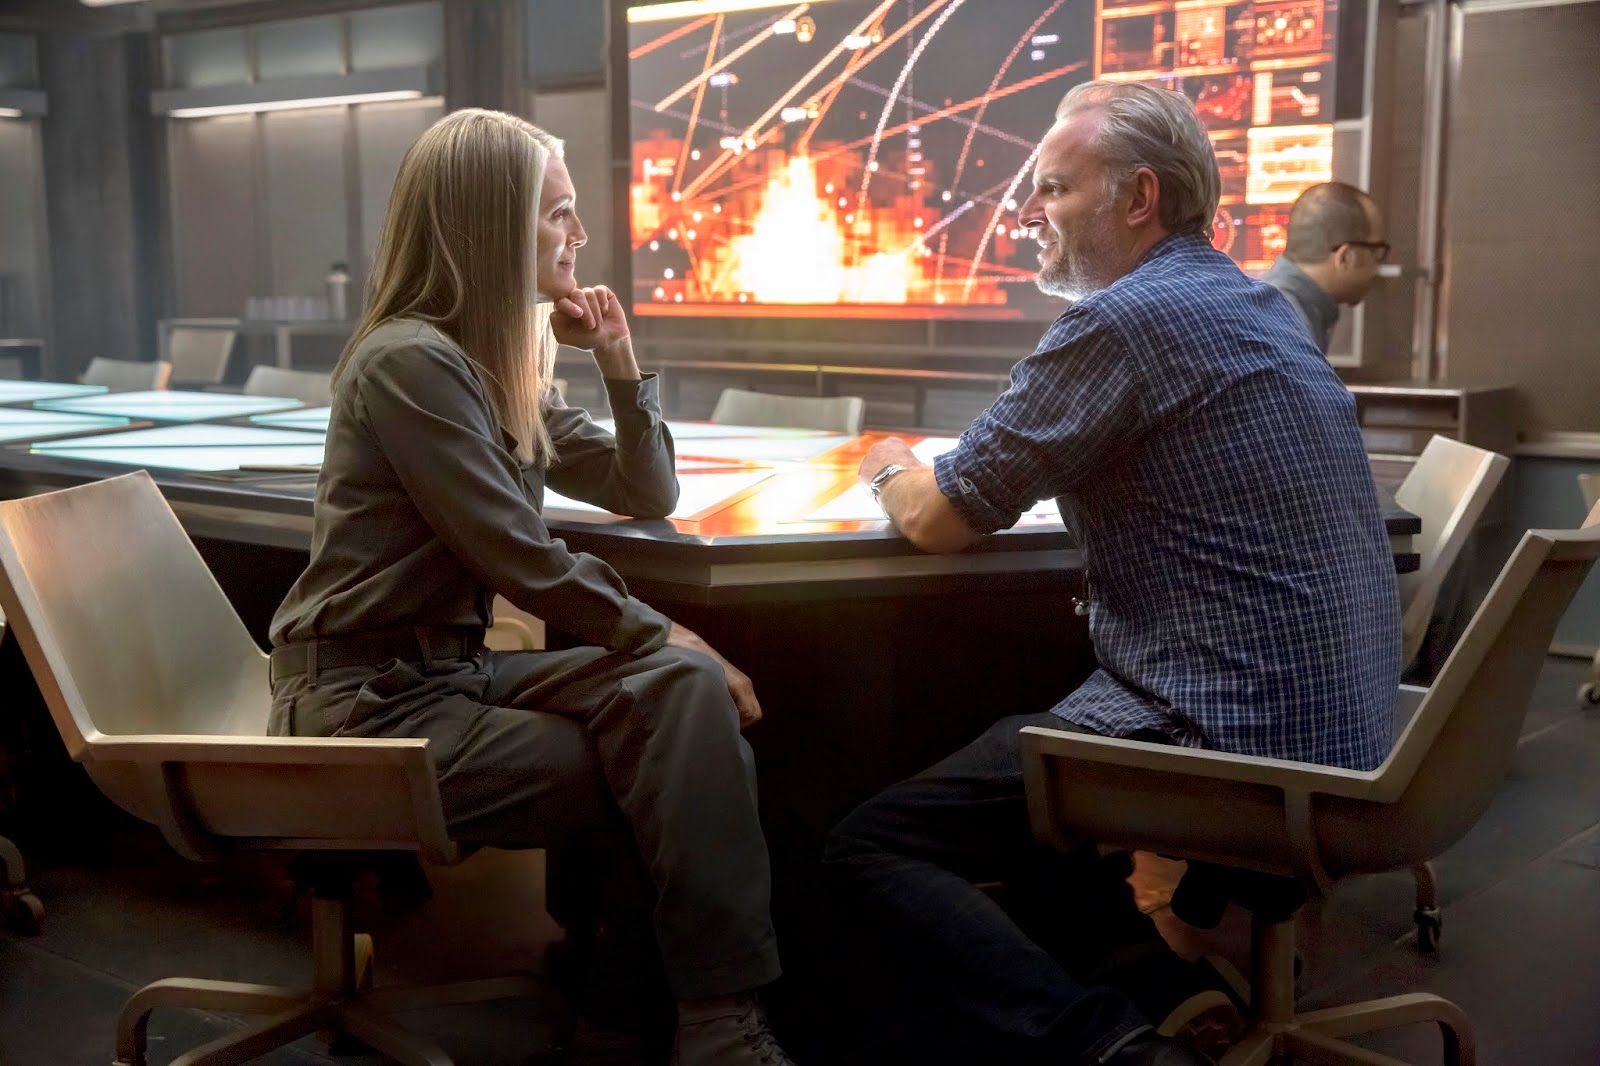 OFFICIAL: New Stills from 'The Hunger Games: Mockingjay Part 1' featuring Katniss, Haymitch, Boggs & MORE